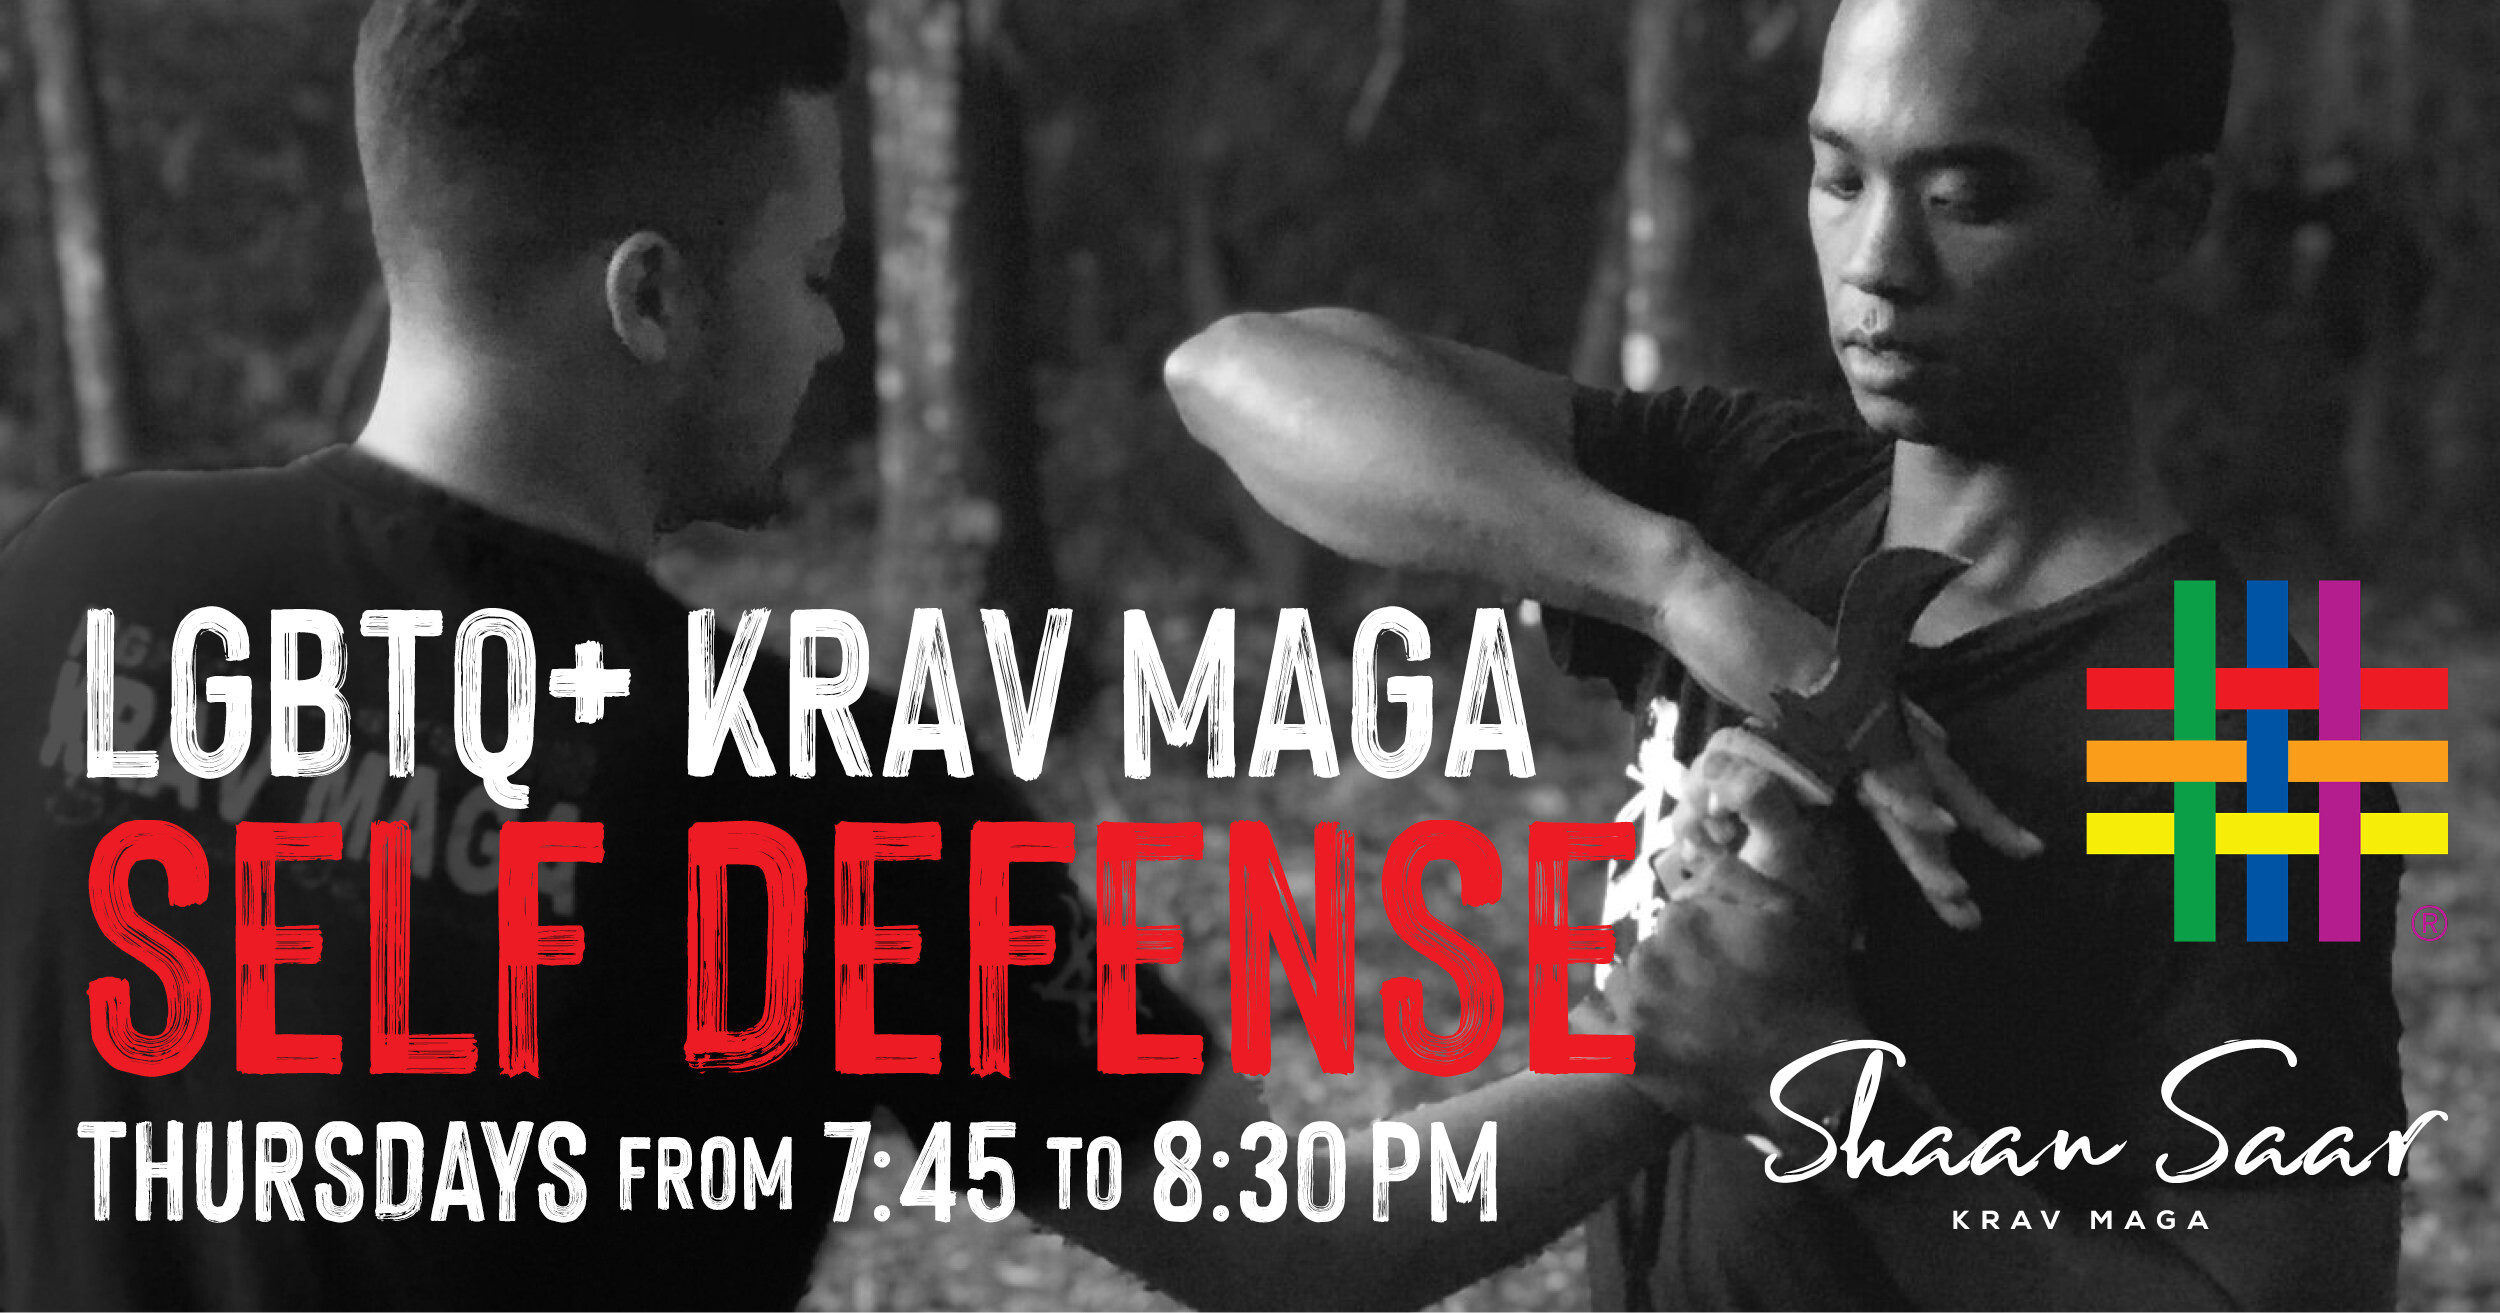 LGBTQ+ Krav Maga Self Defense